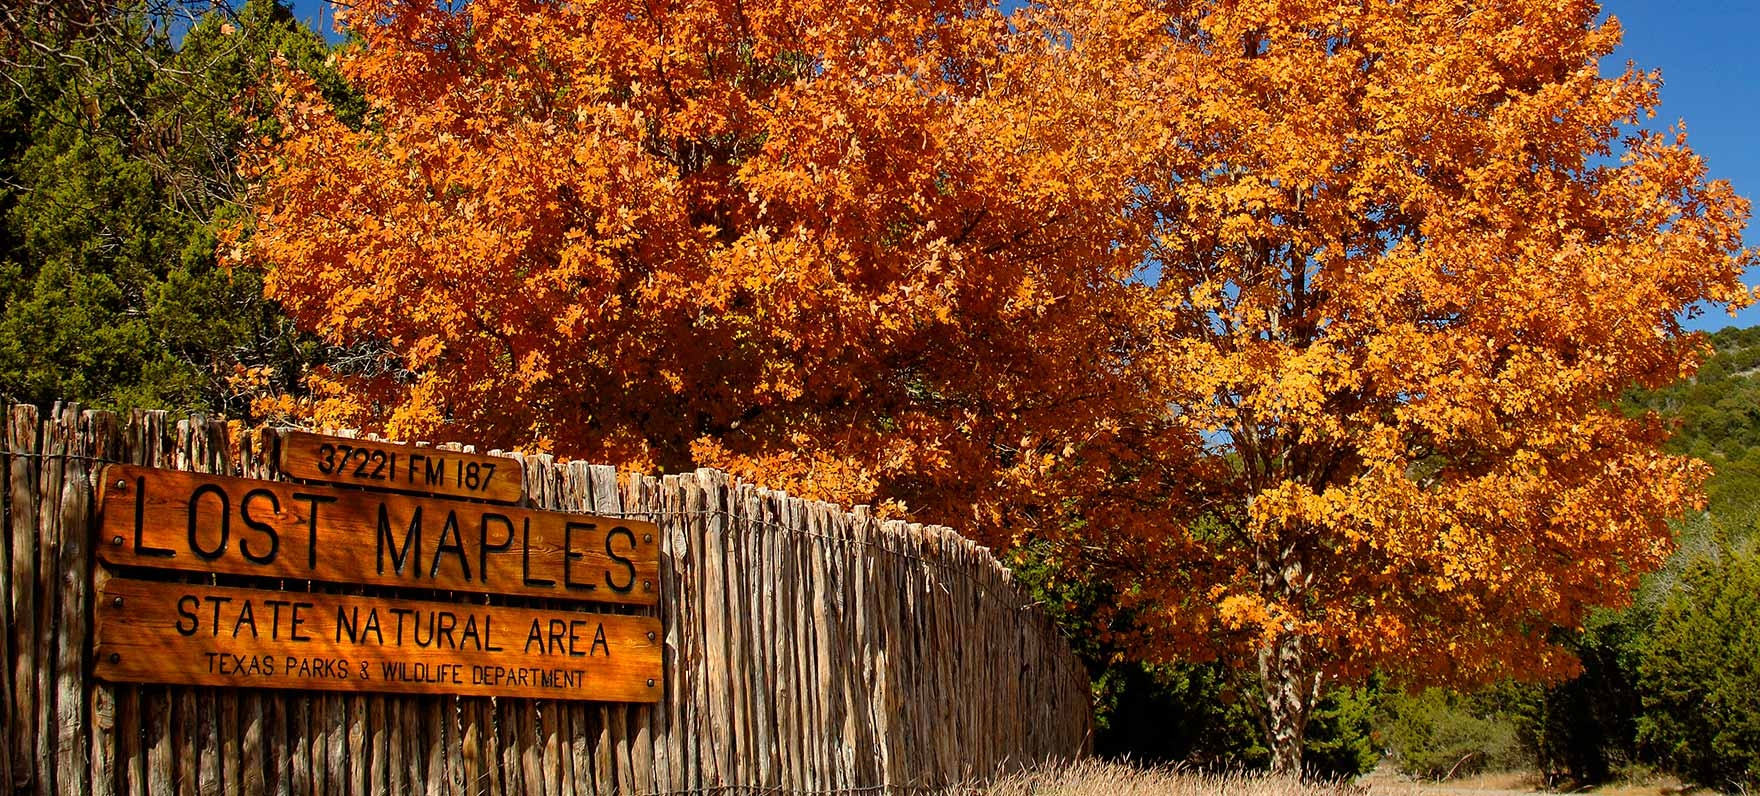 Lost Maples State Natural Area — Texas Parks & Wildlife Department